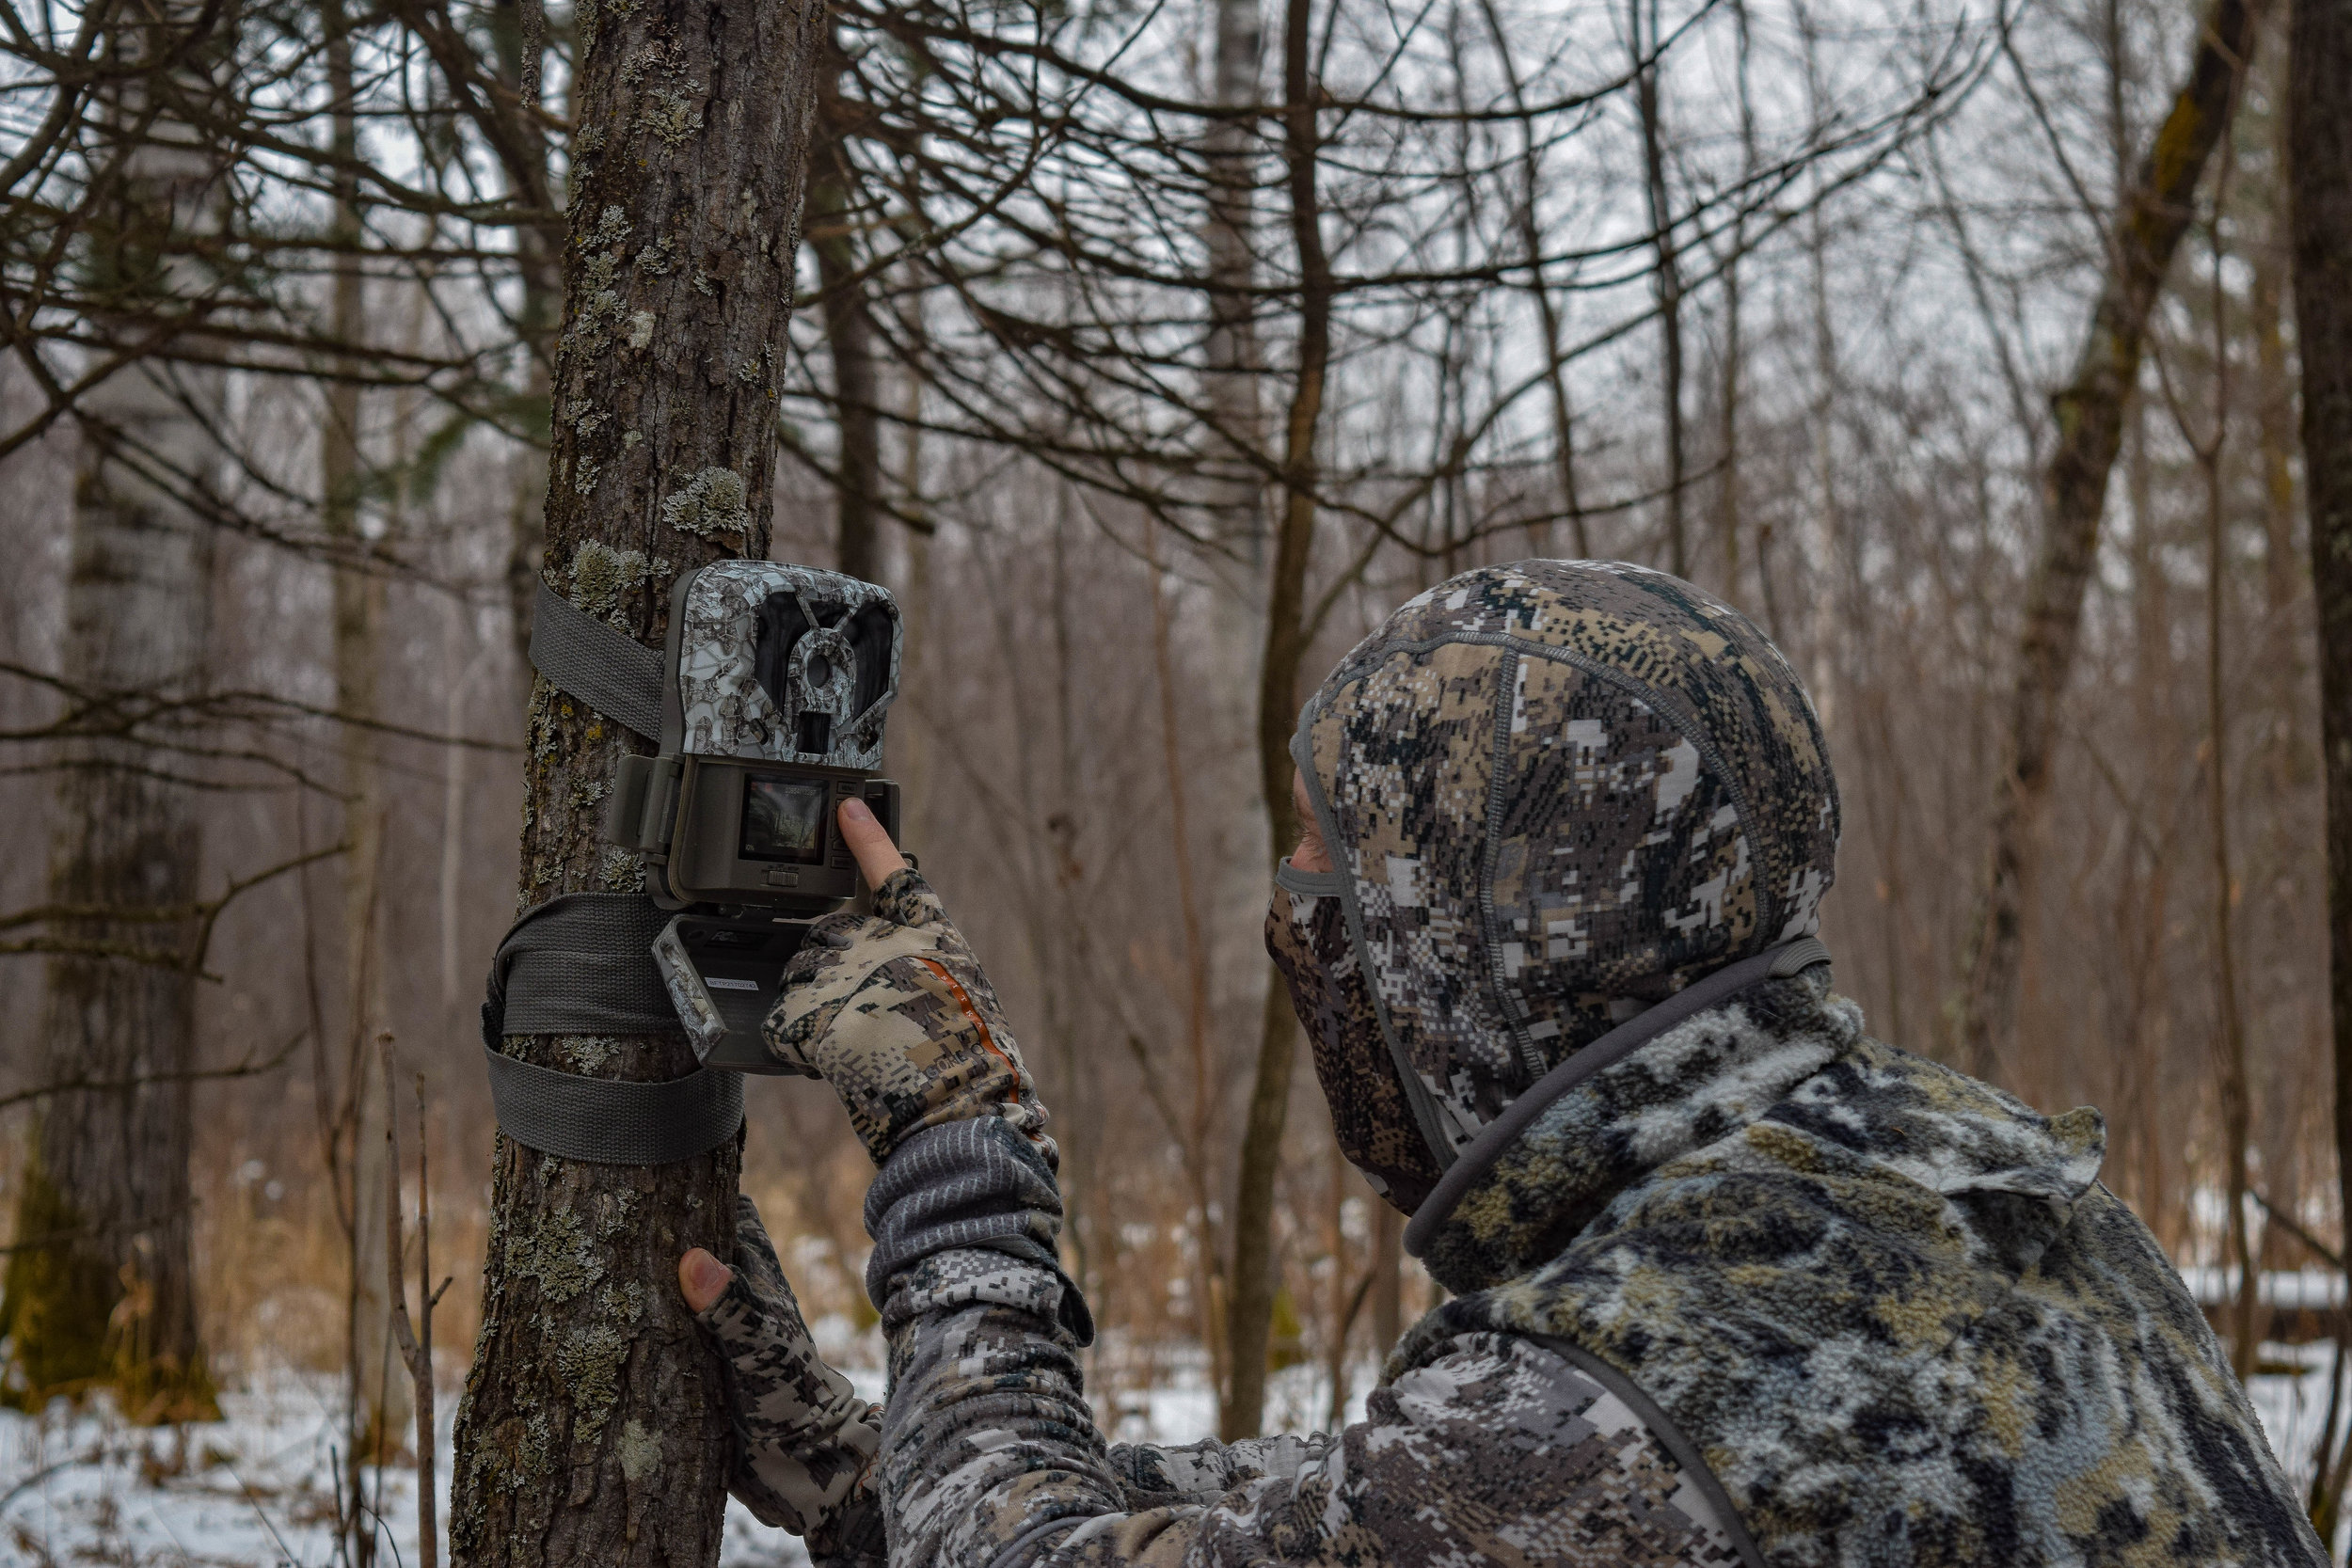 Trail cameras are a great way to help you find a mature buck to hunt in the late season.